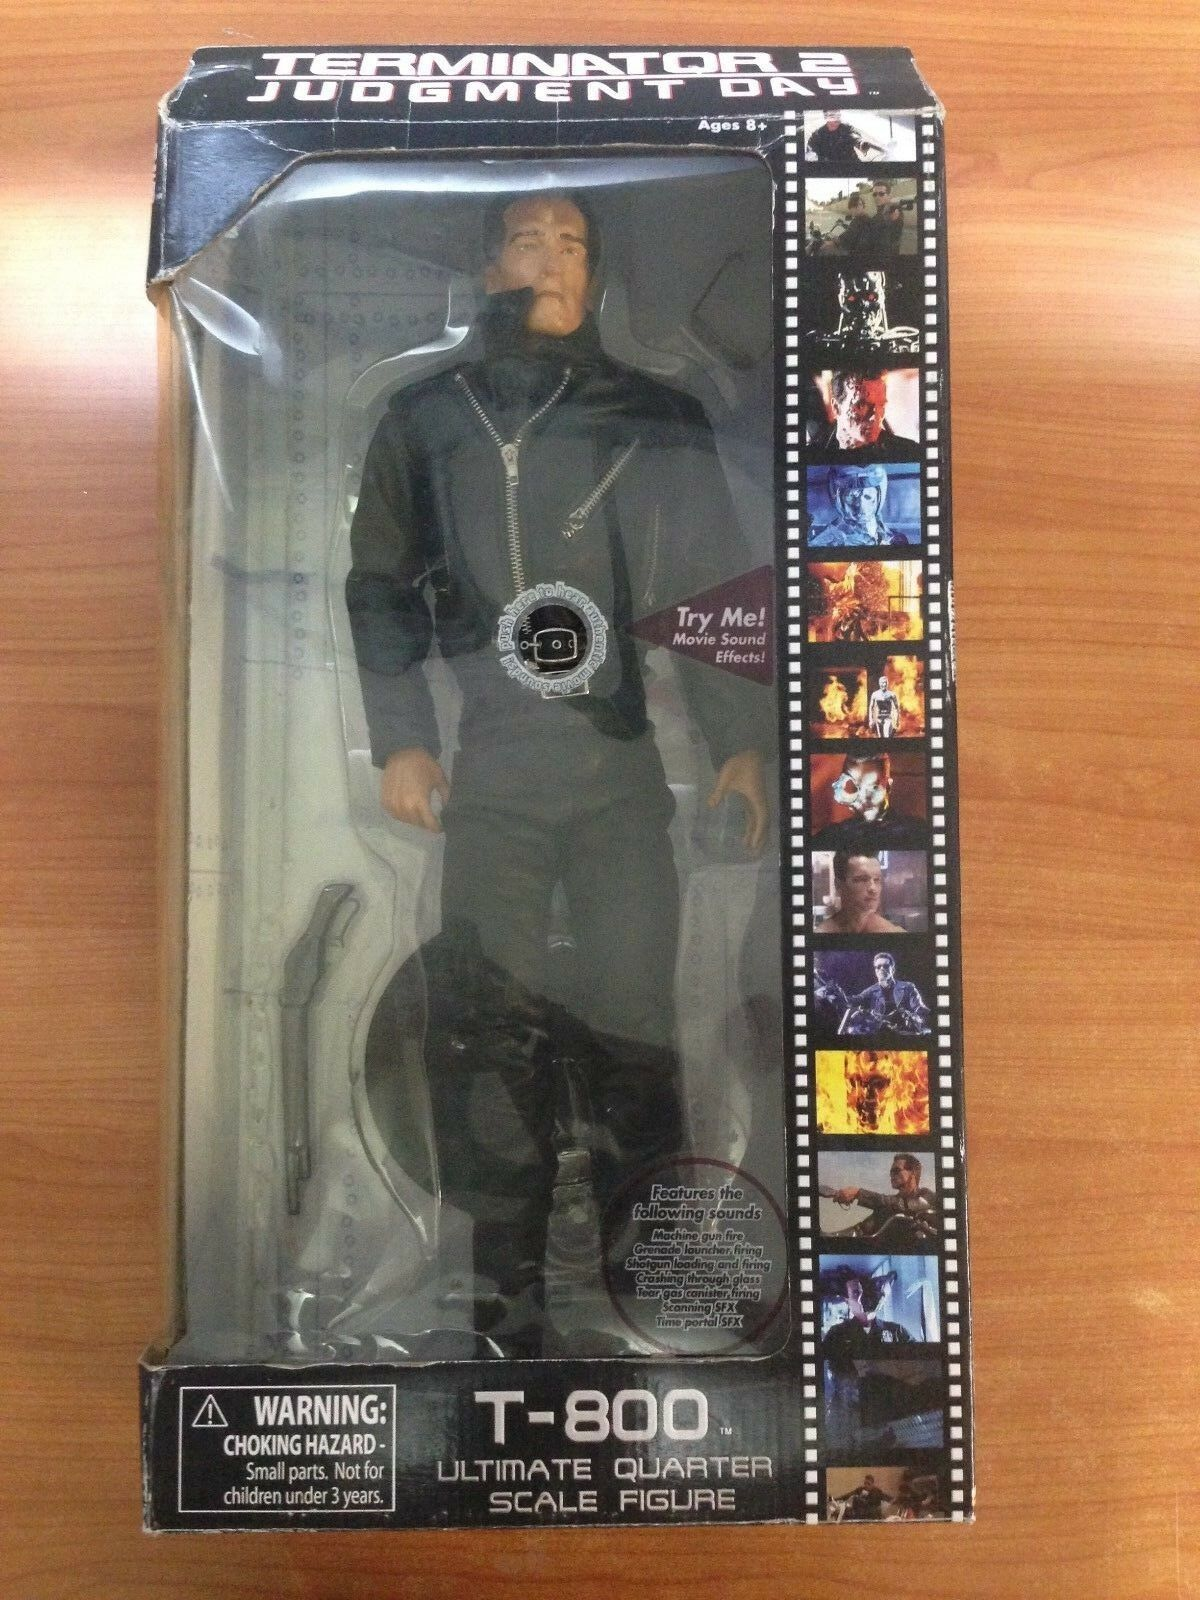 2009 Terminator 2 Judgement Day Ultimate 1 4 Scale Action Figure - T-800